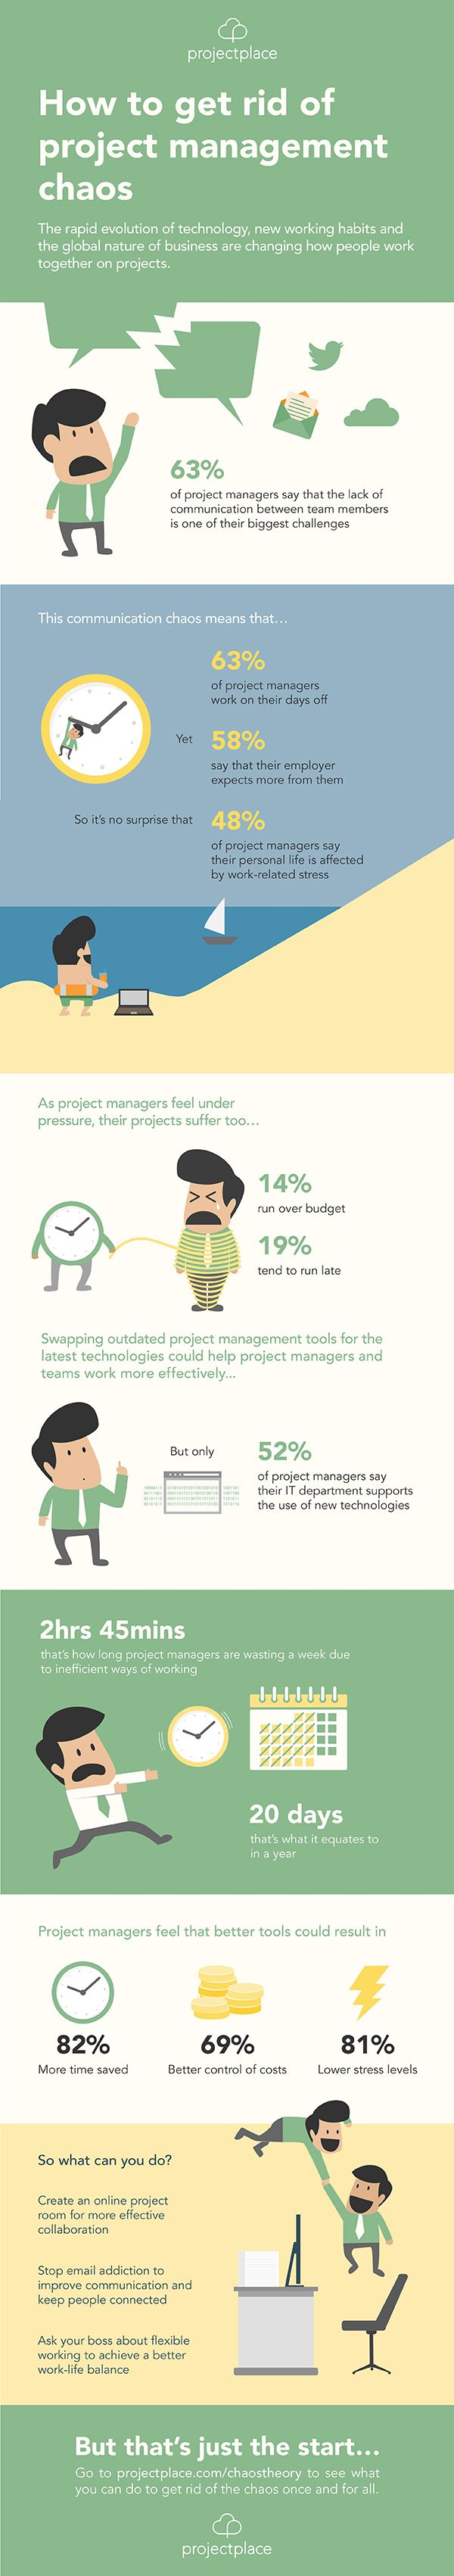 How To Get Rid Of Project Management Chaos - #infographic